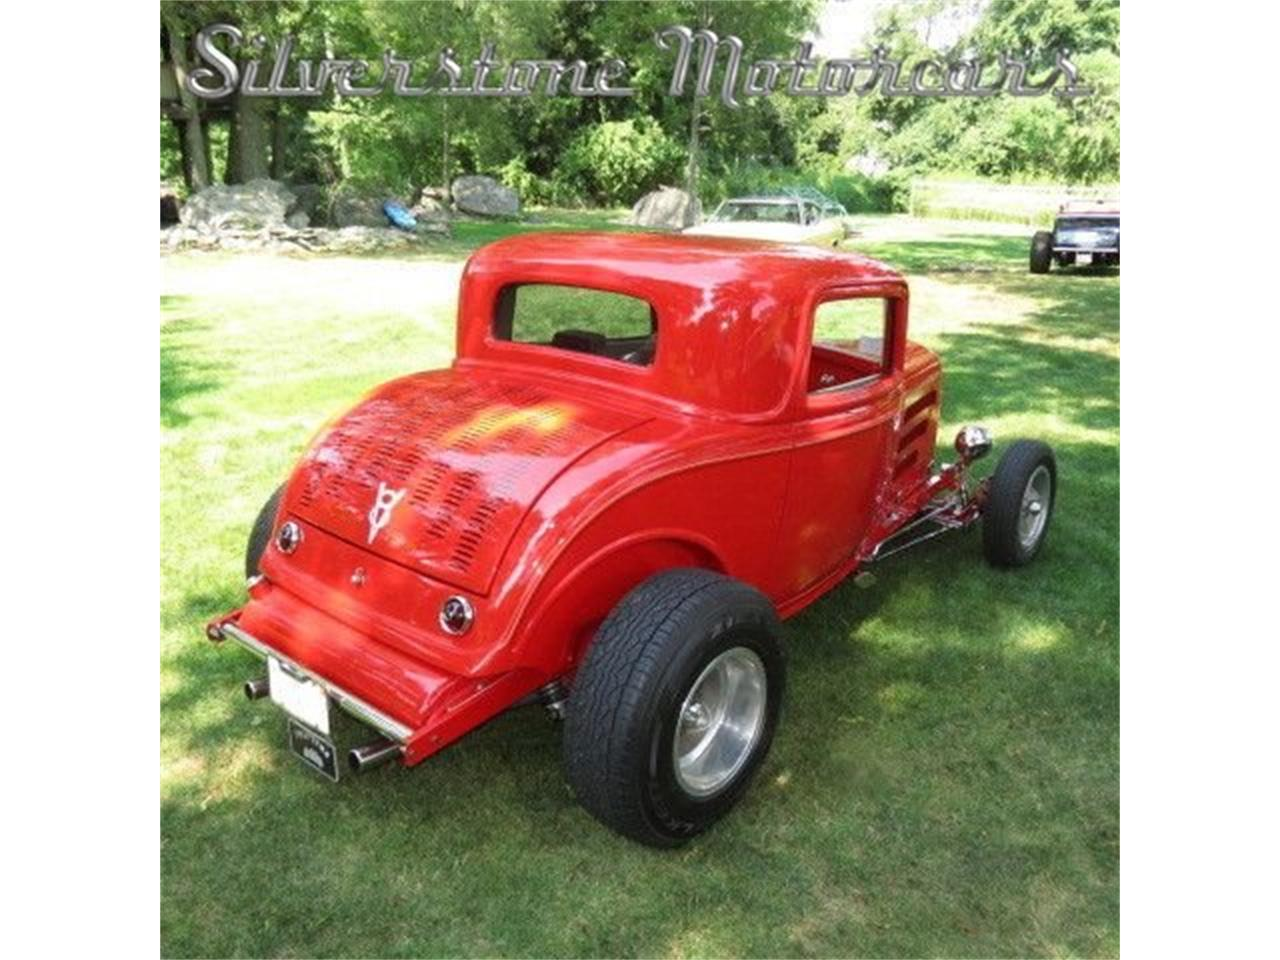 Large Picture of Classic 1932 Ford 3-Window Coupe located in North Andover Massachusetts Offered by Silverstone Motorcars - FAHW